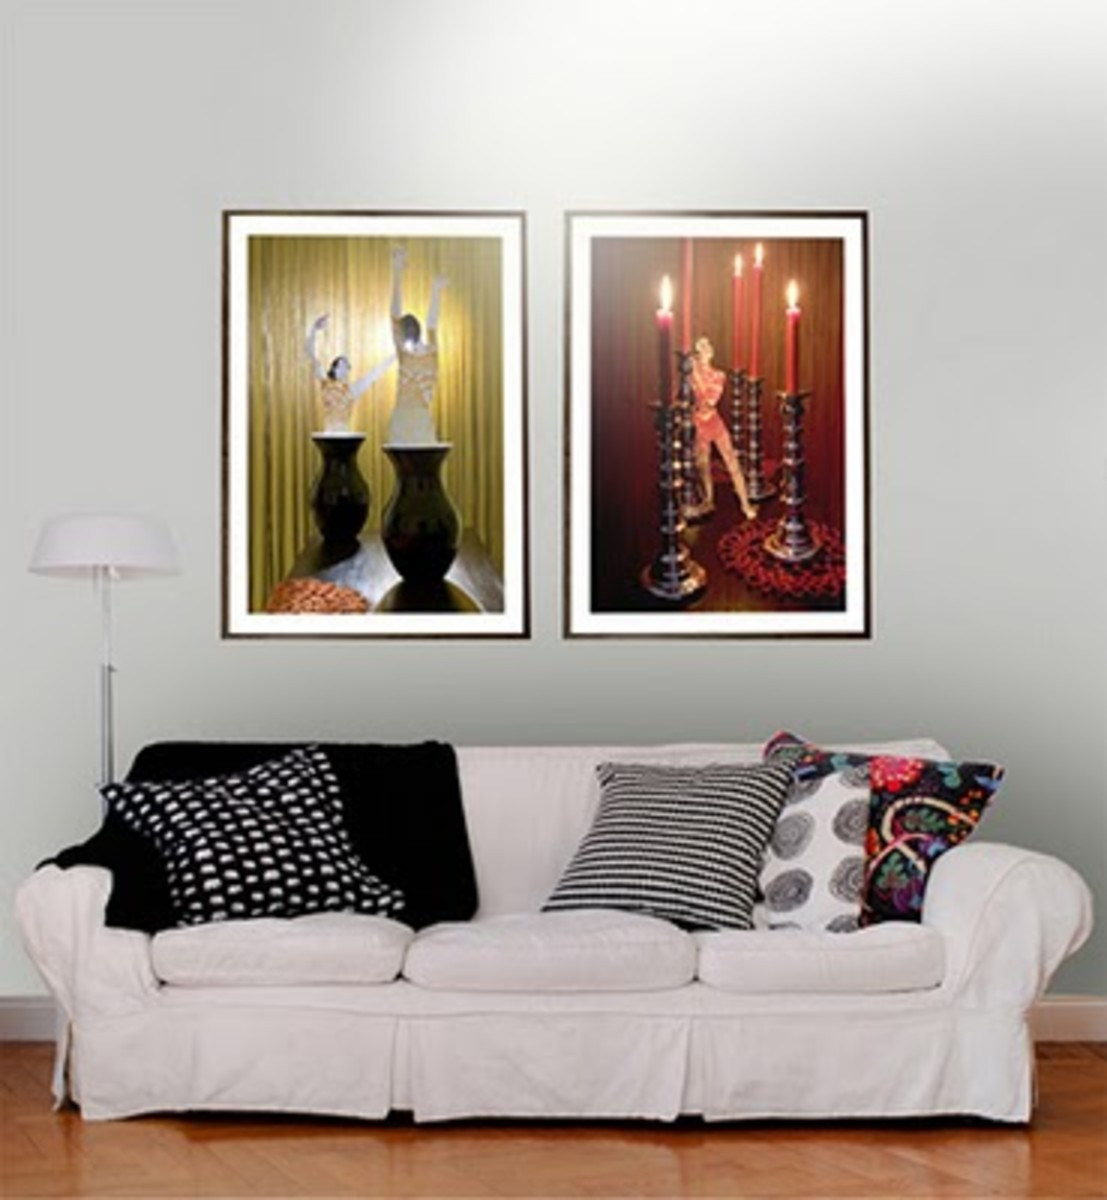 Hanging Artwork - Picture Hanging Ideas For Interior Walls